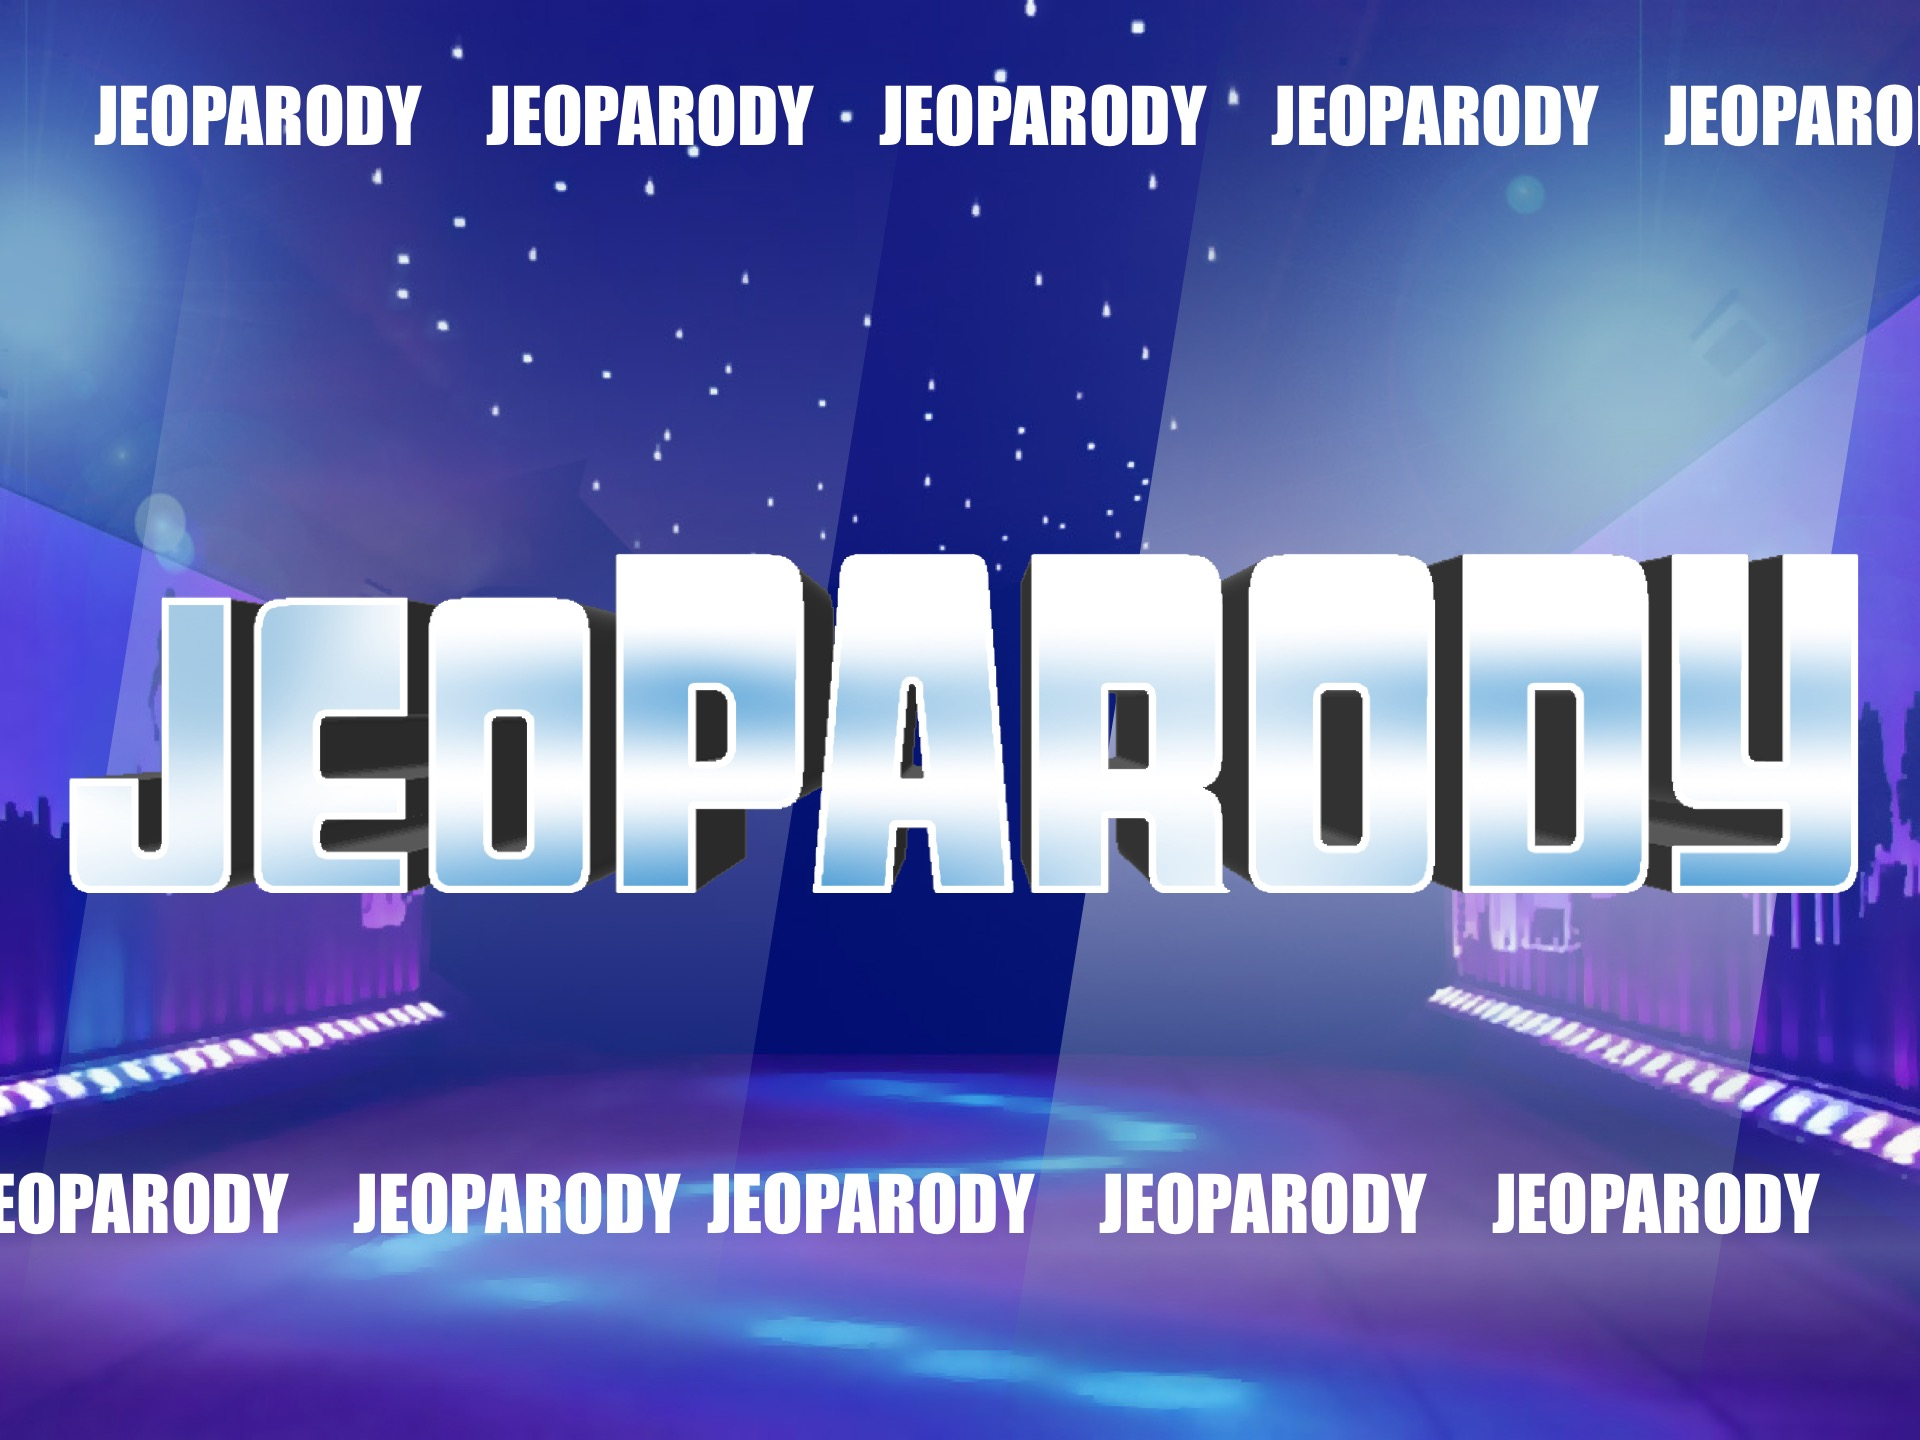 Jeopardy powerpoint game template youth downloadsyouth downloads description designed in 2016 this is the best free customizable jeopardy style powerpoint template game toneelgroepblik